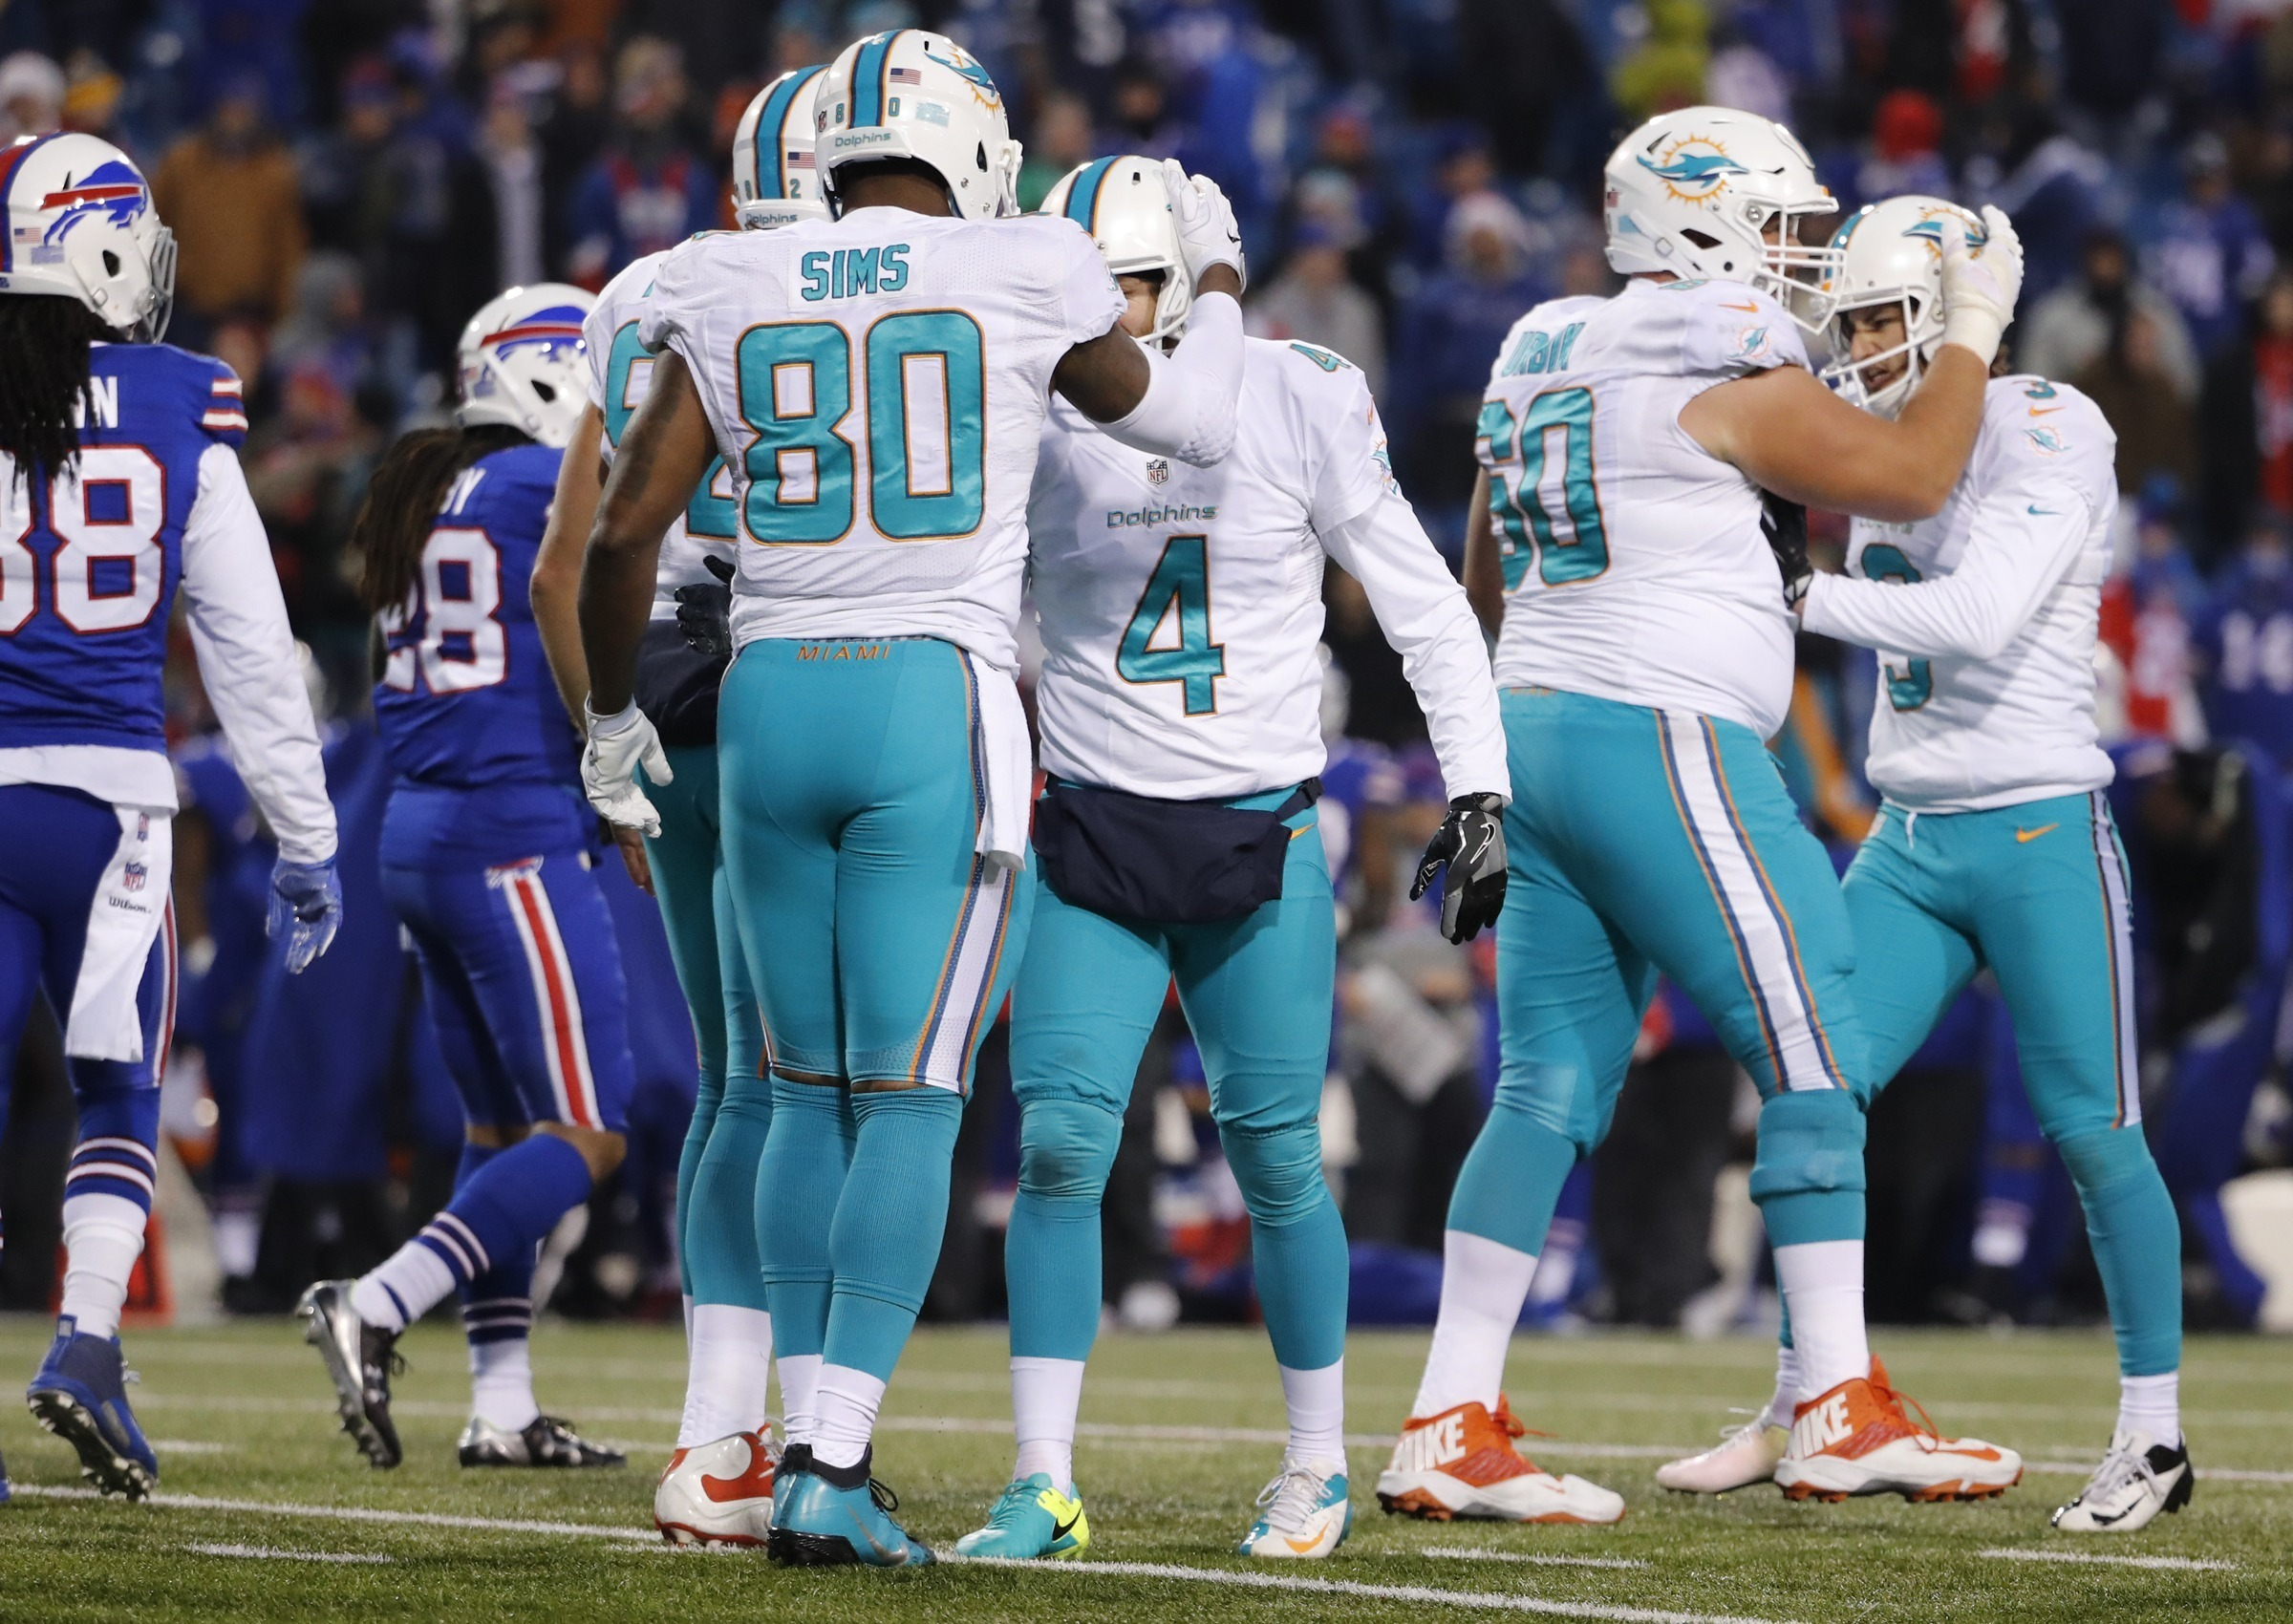 Miami Dolphins celebrate after kicker Andrew Franks (3) made the winning goal in overtime of an NFL football game against the Buffalo Bills in Orchard Park, N.Y., Saturday, Dec. 24, 2016. (Al Diaz/Miami Herald via AP)